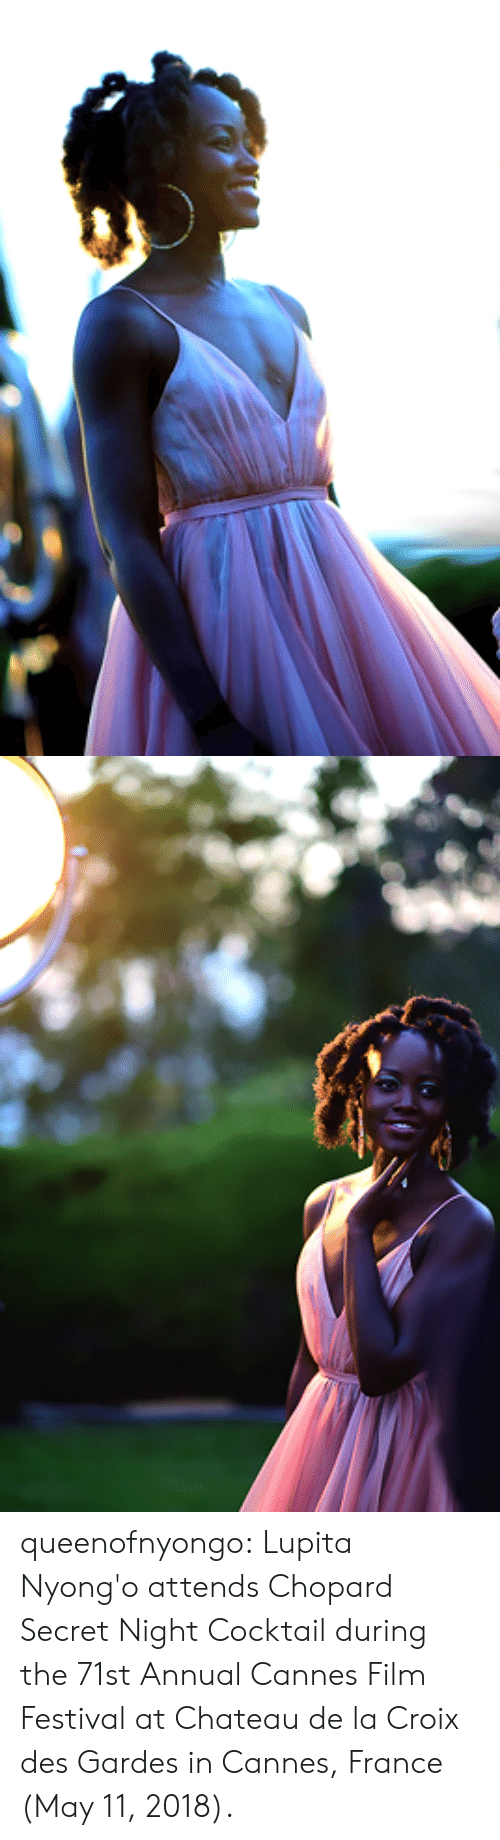 Target, Tumblr, and Blog: queenofnyongo:   Lupita Nyong'o attends Chopard Secret Night Cocktail during the 71st Annual Cannes Film Festival at Chateau de la Croix des Gardes in Cannes, France (May 11, 2018).